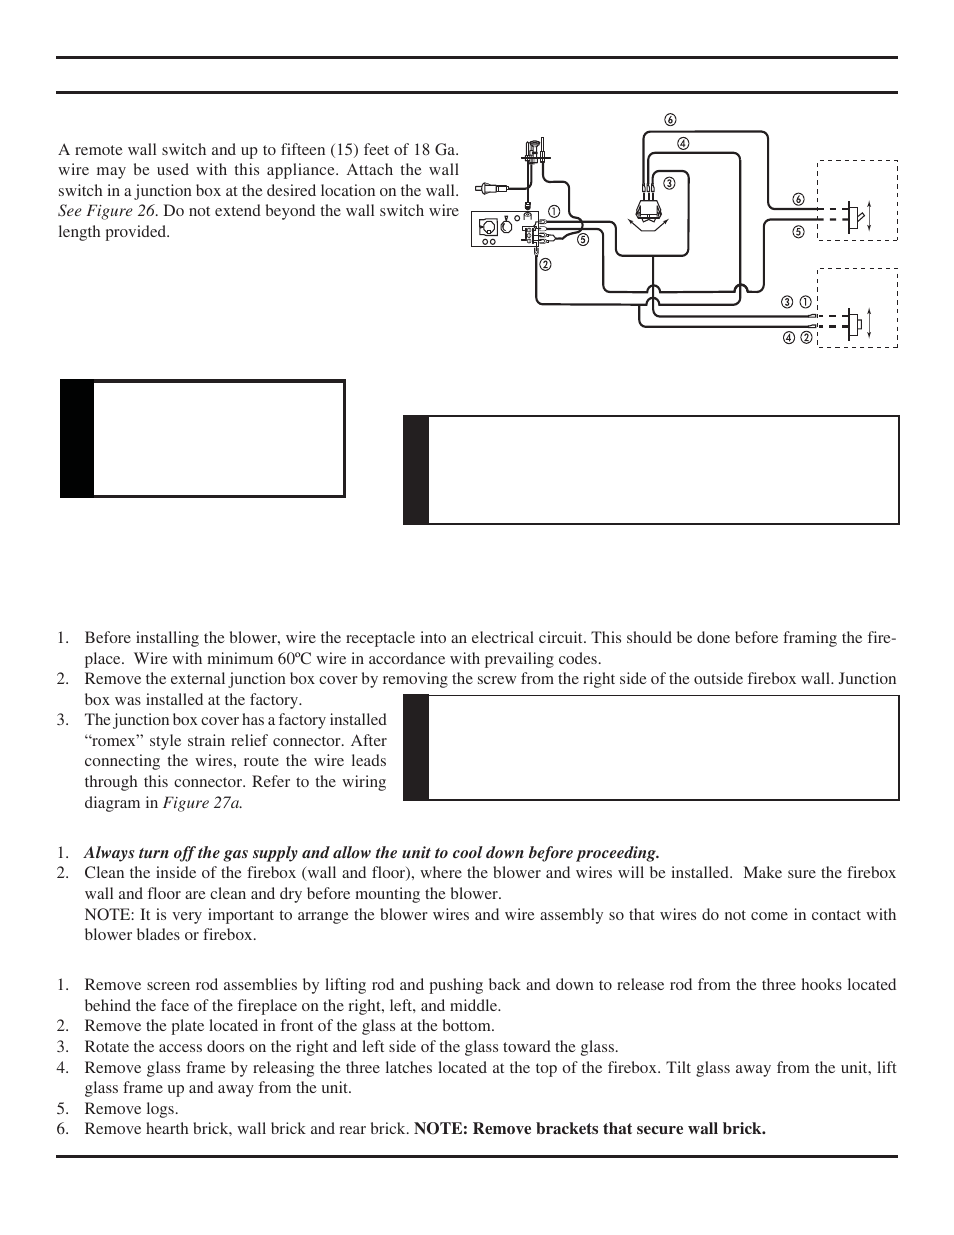 Remote Wall Switch Installation Warning Mounted Gas Firep Wiring Diagram Monessen Hearth Direct Vent Fireplace Khldv Series User Manual Page 26 52